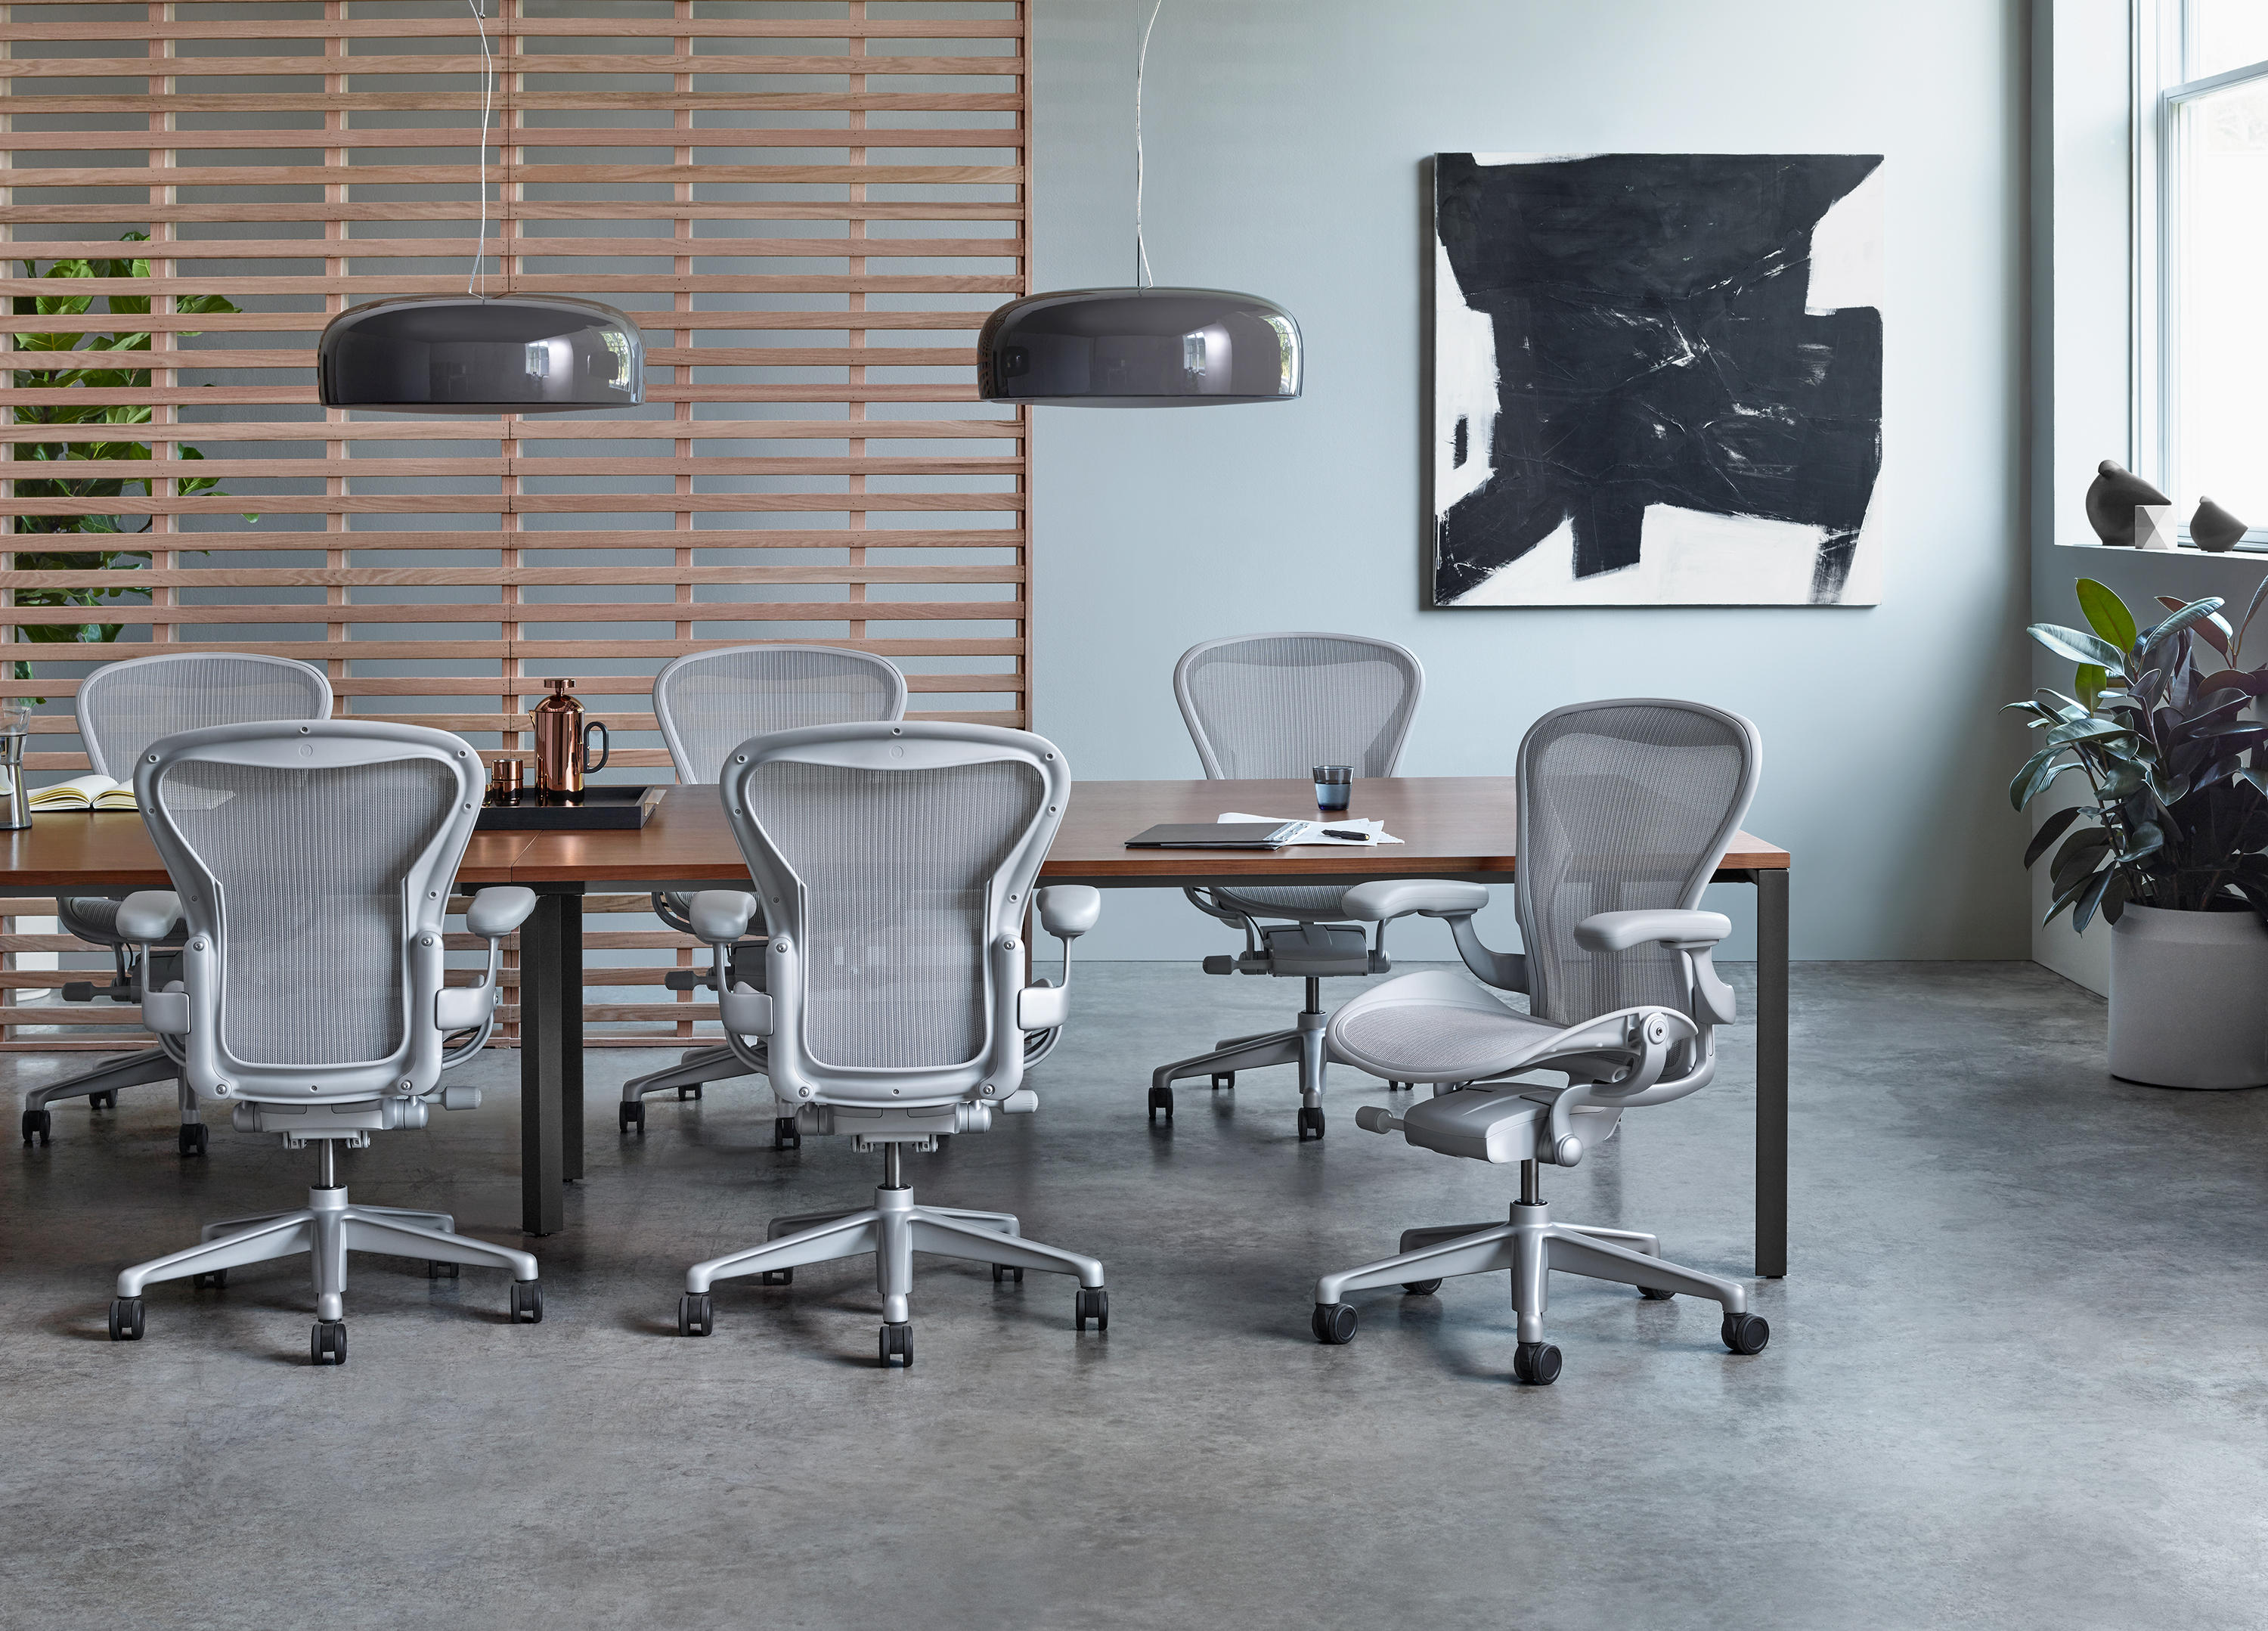 Aeron Chair Office Chairs From Herman Miller Architonic